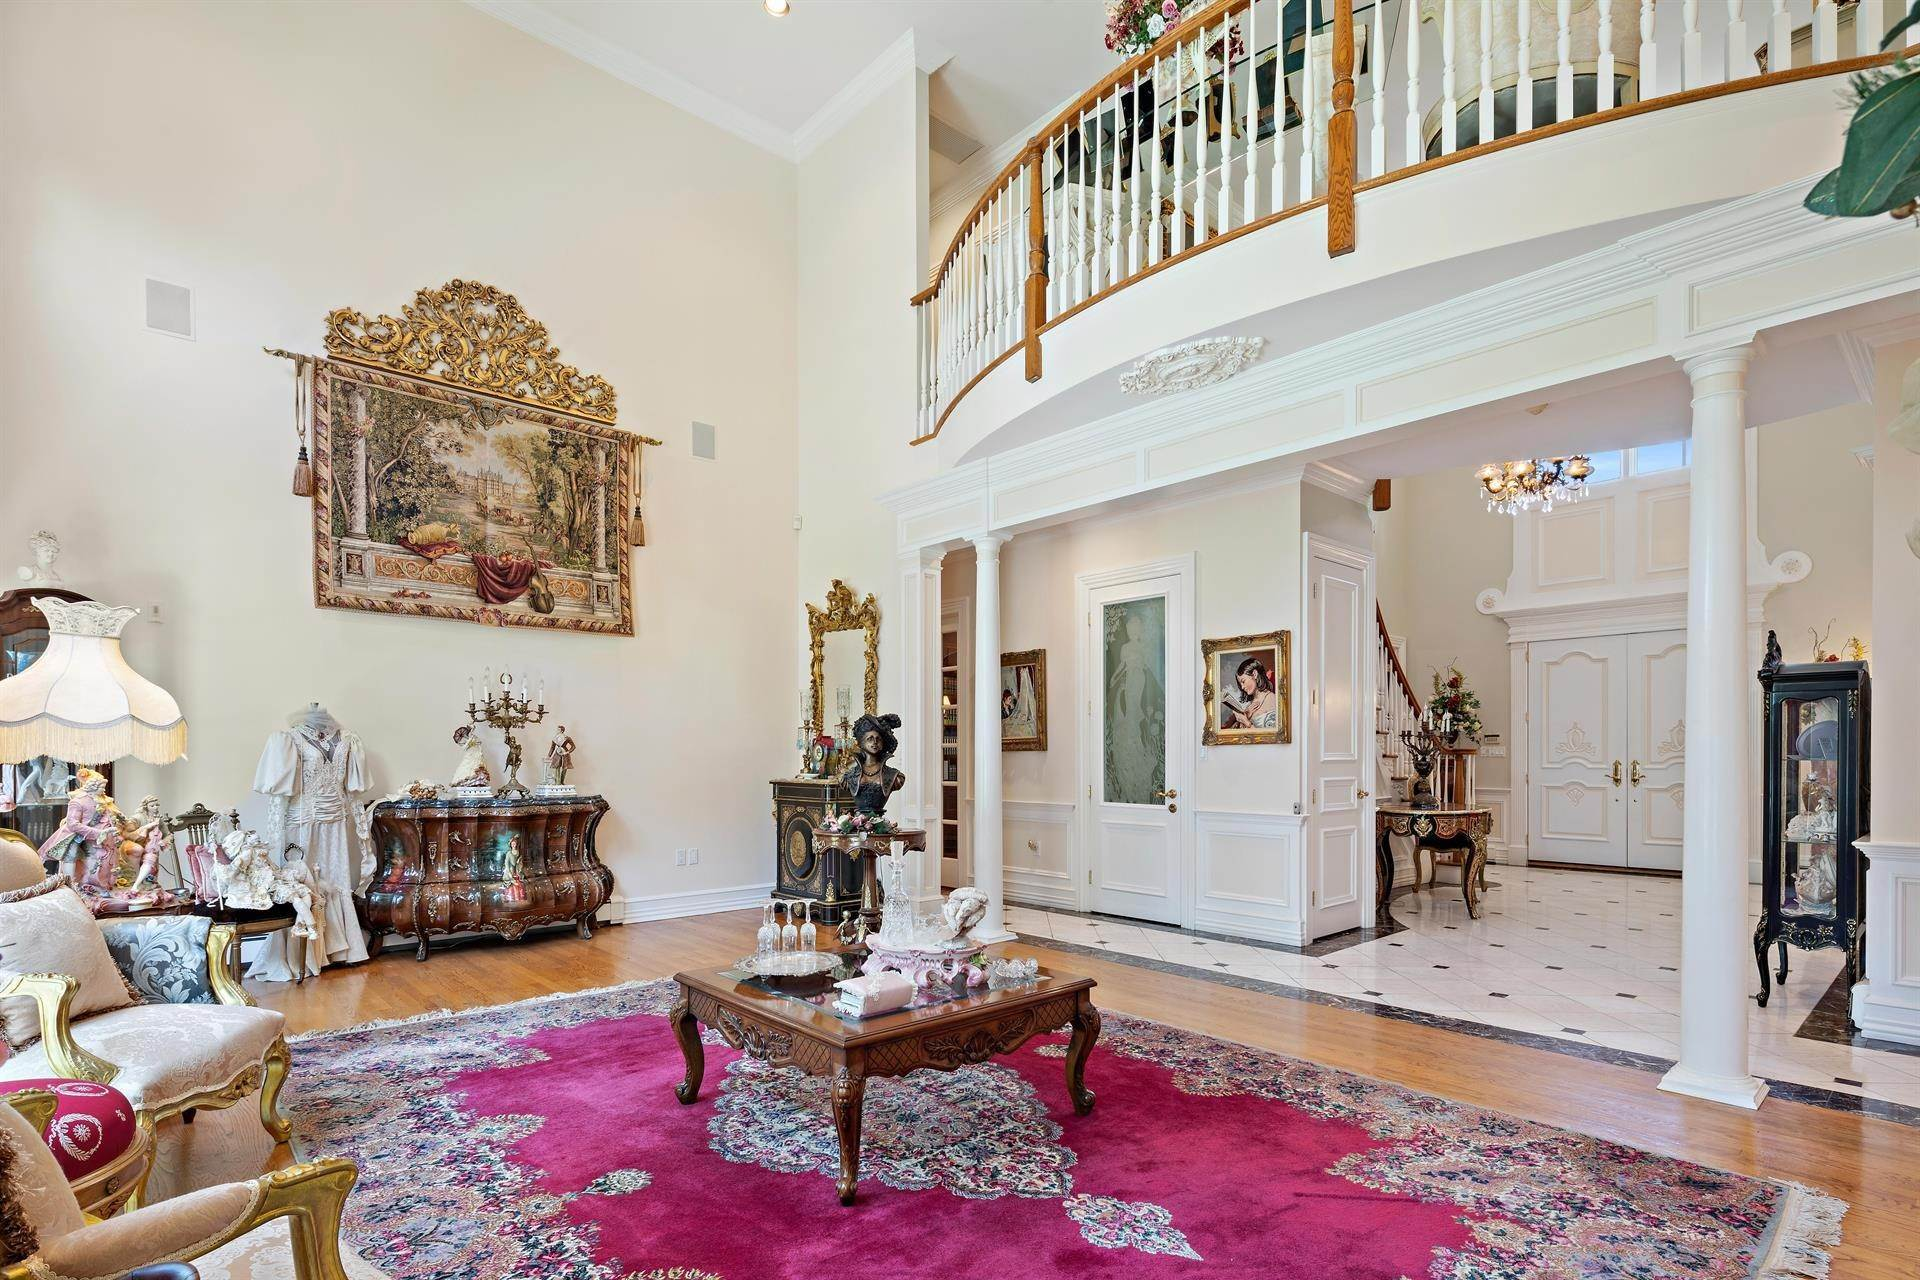 20. Residential for Sale at 15 Hunter Ridge Woodcliff Lake, New Jersey, 07677 United States